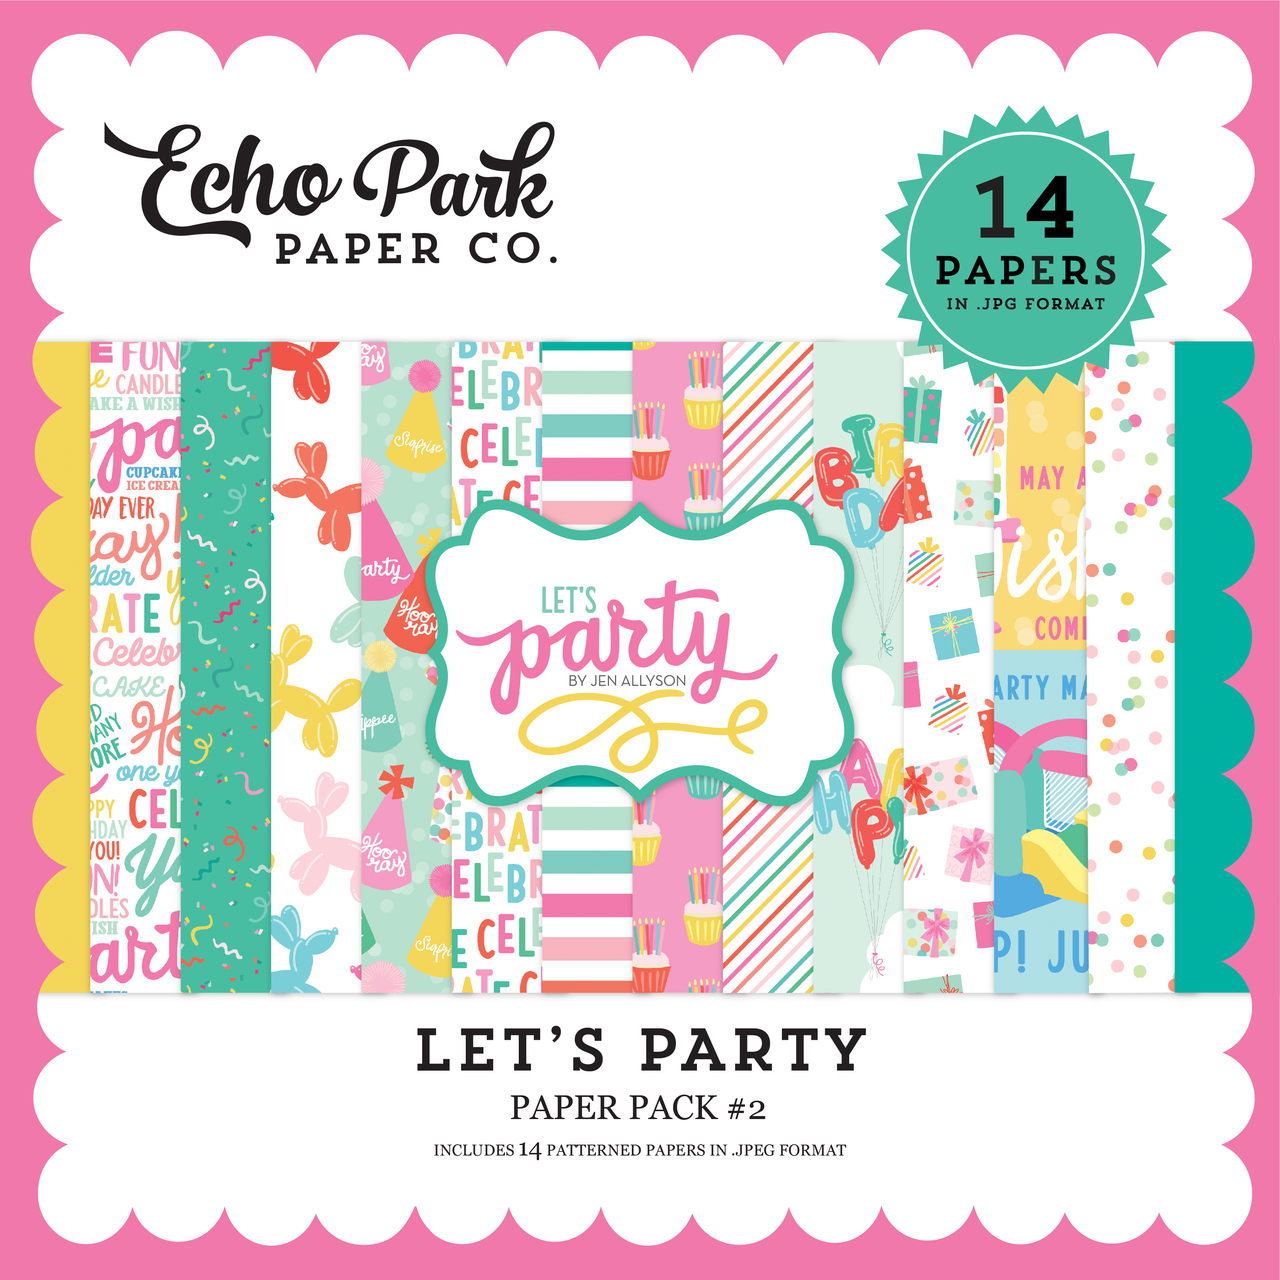 Let's Party Paper Pack #2